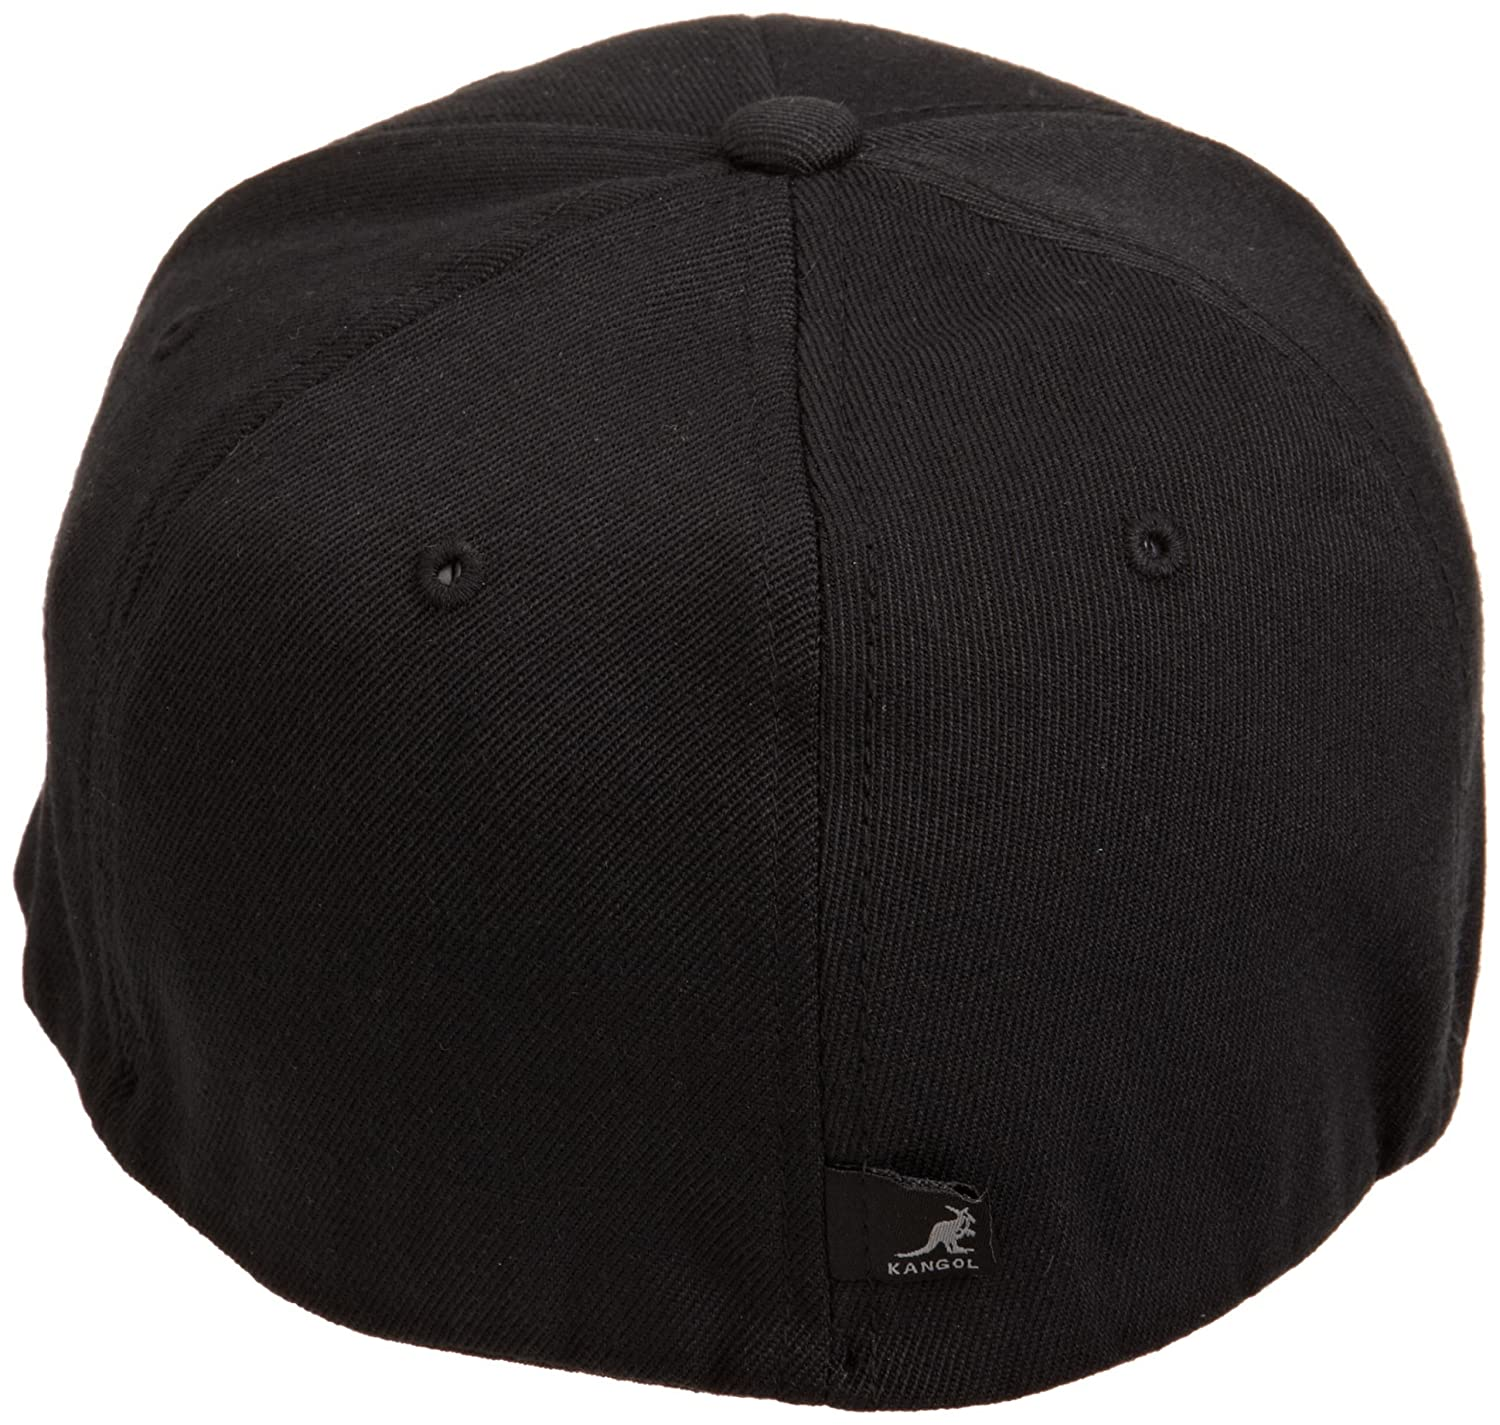 845beb974492b Kangol Men s Wool Flex-fit Baseball Cap at Amazon Men s Clothing store